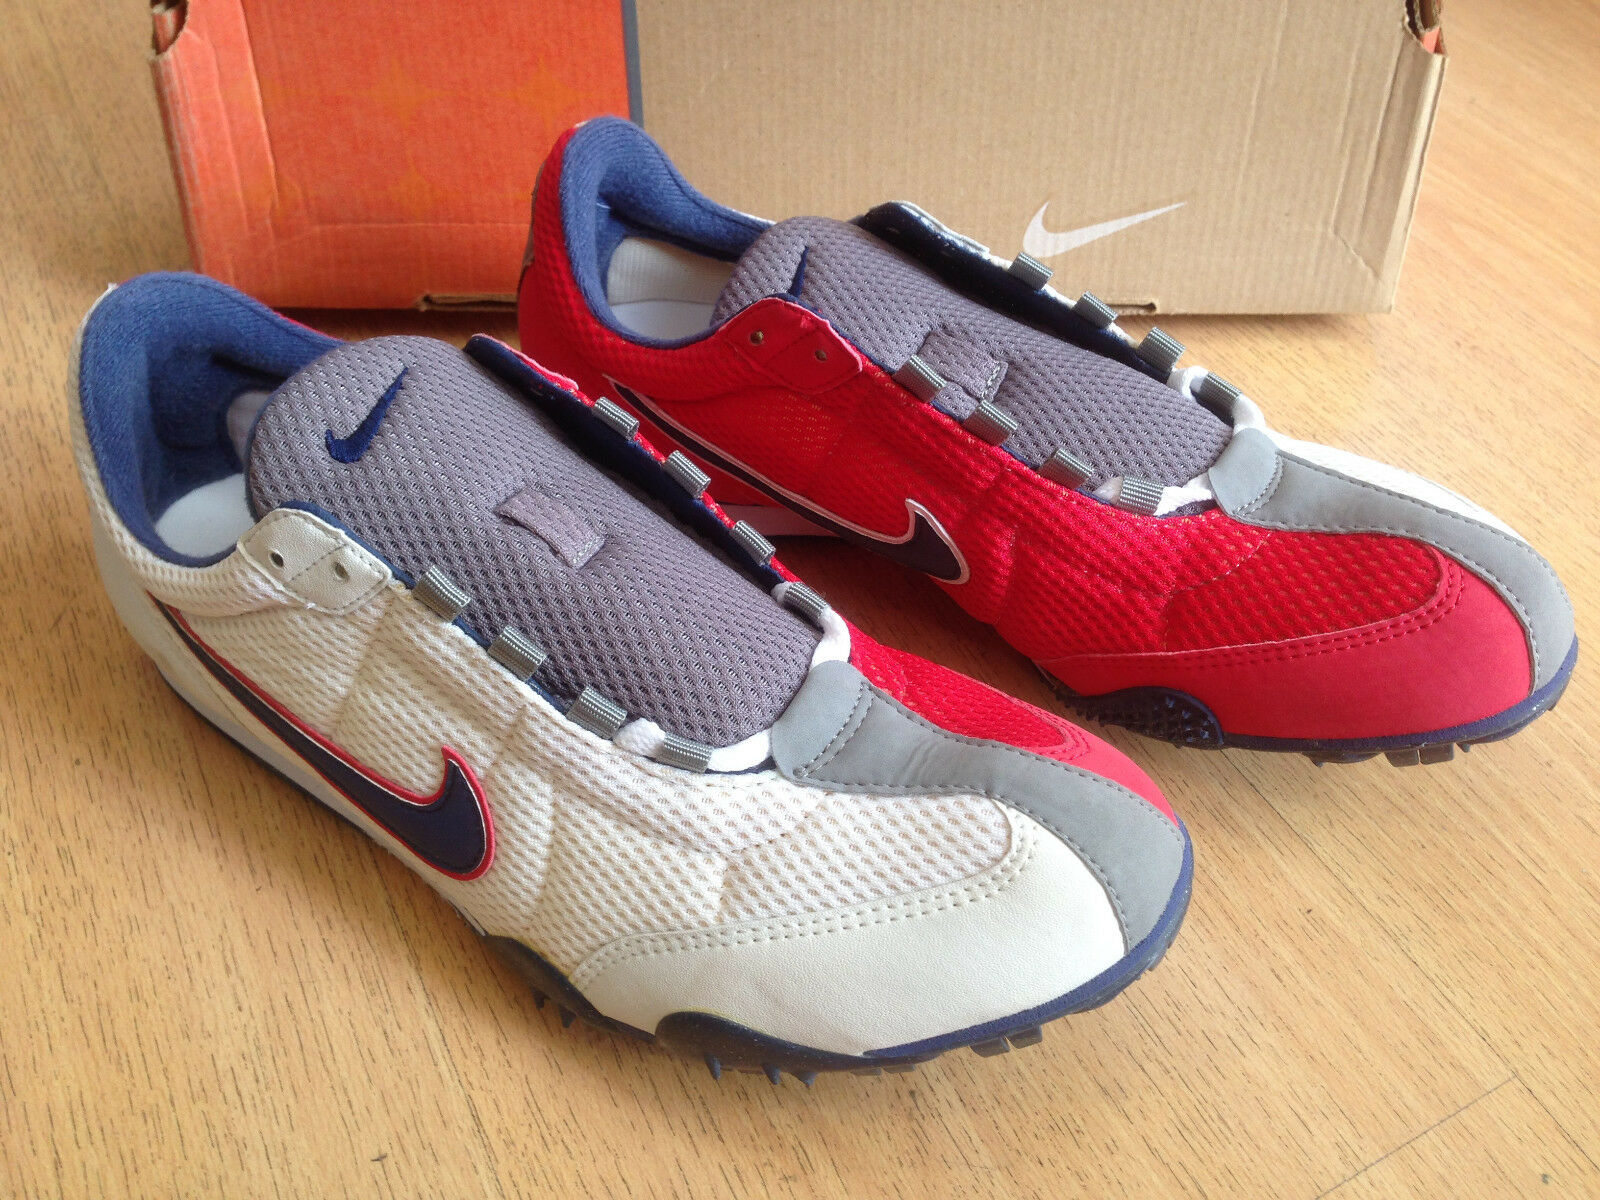 OG 2002 Nike 150 Rival Zoom Rival 150 D III track & field spikes sneakers size US10 UK9!!! 7d1236